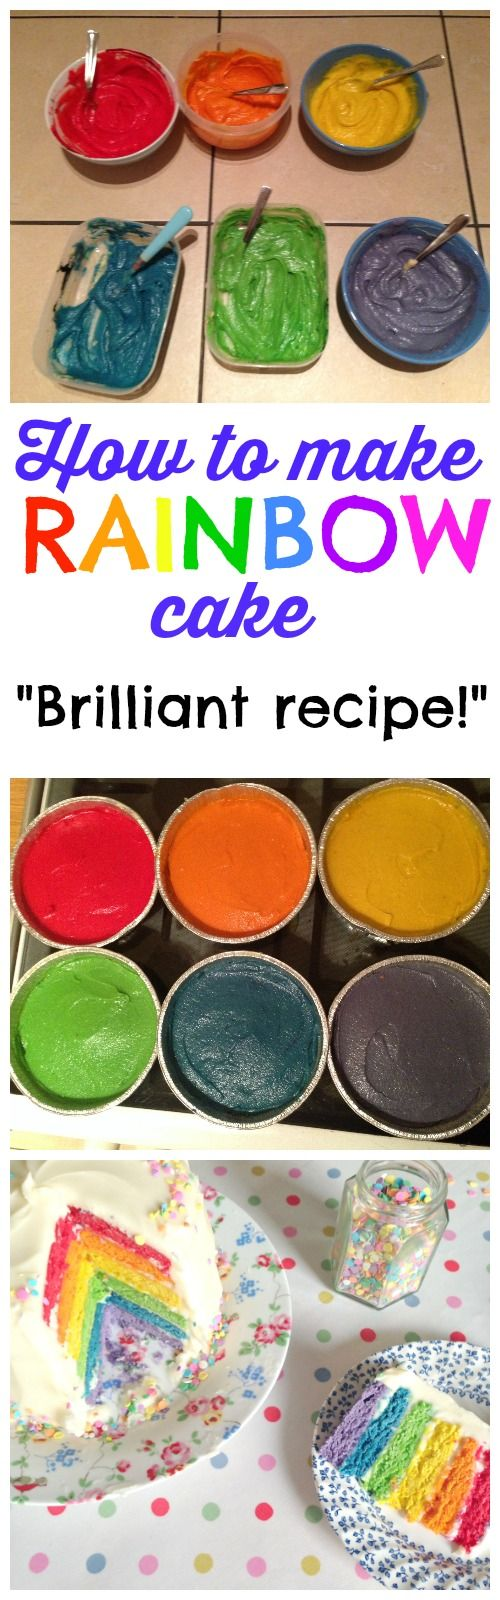 Most awesome cake ever?! A rainbow cake recipe and tutorial so SIMPLE that even kids have made it! The most fun cake for birthday parties for kids, or BIG kids too.